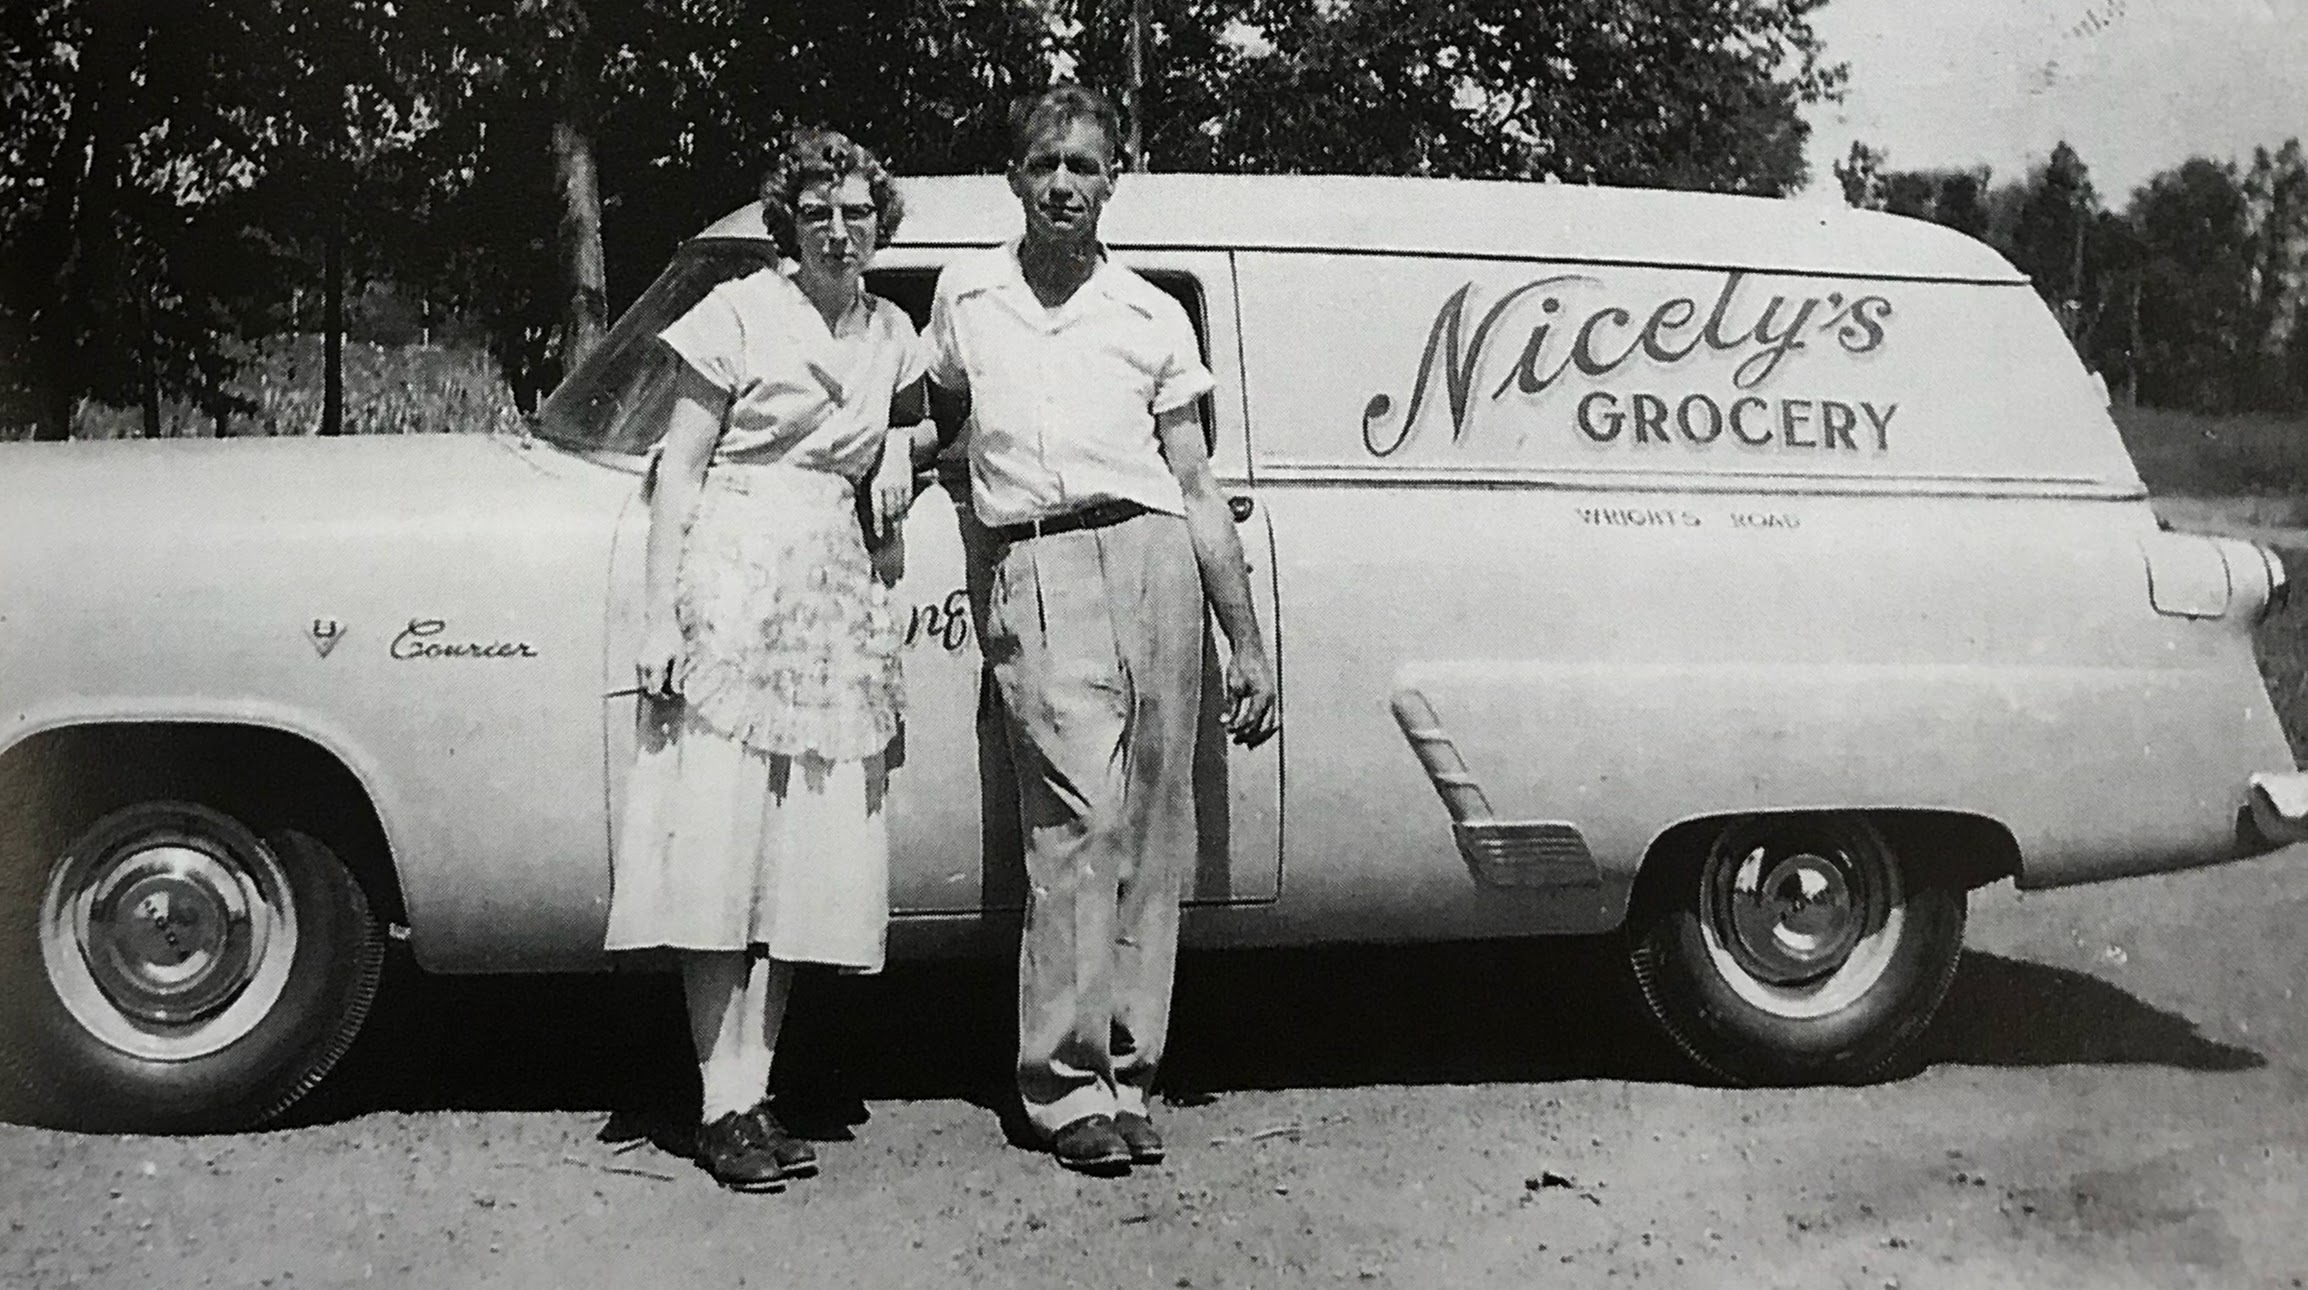 Imelda and Helmer stand next to Nicely Grocery Store Delivery Truck in the 1950s